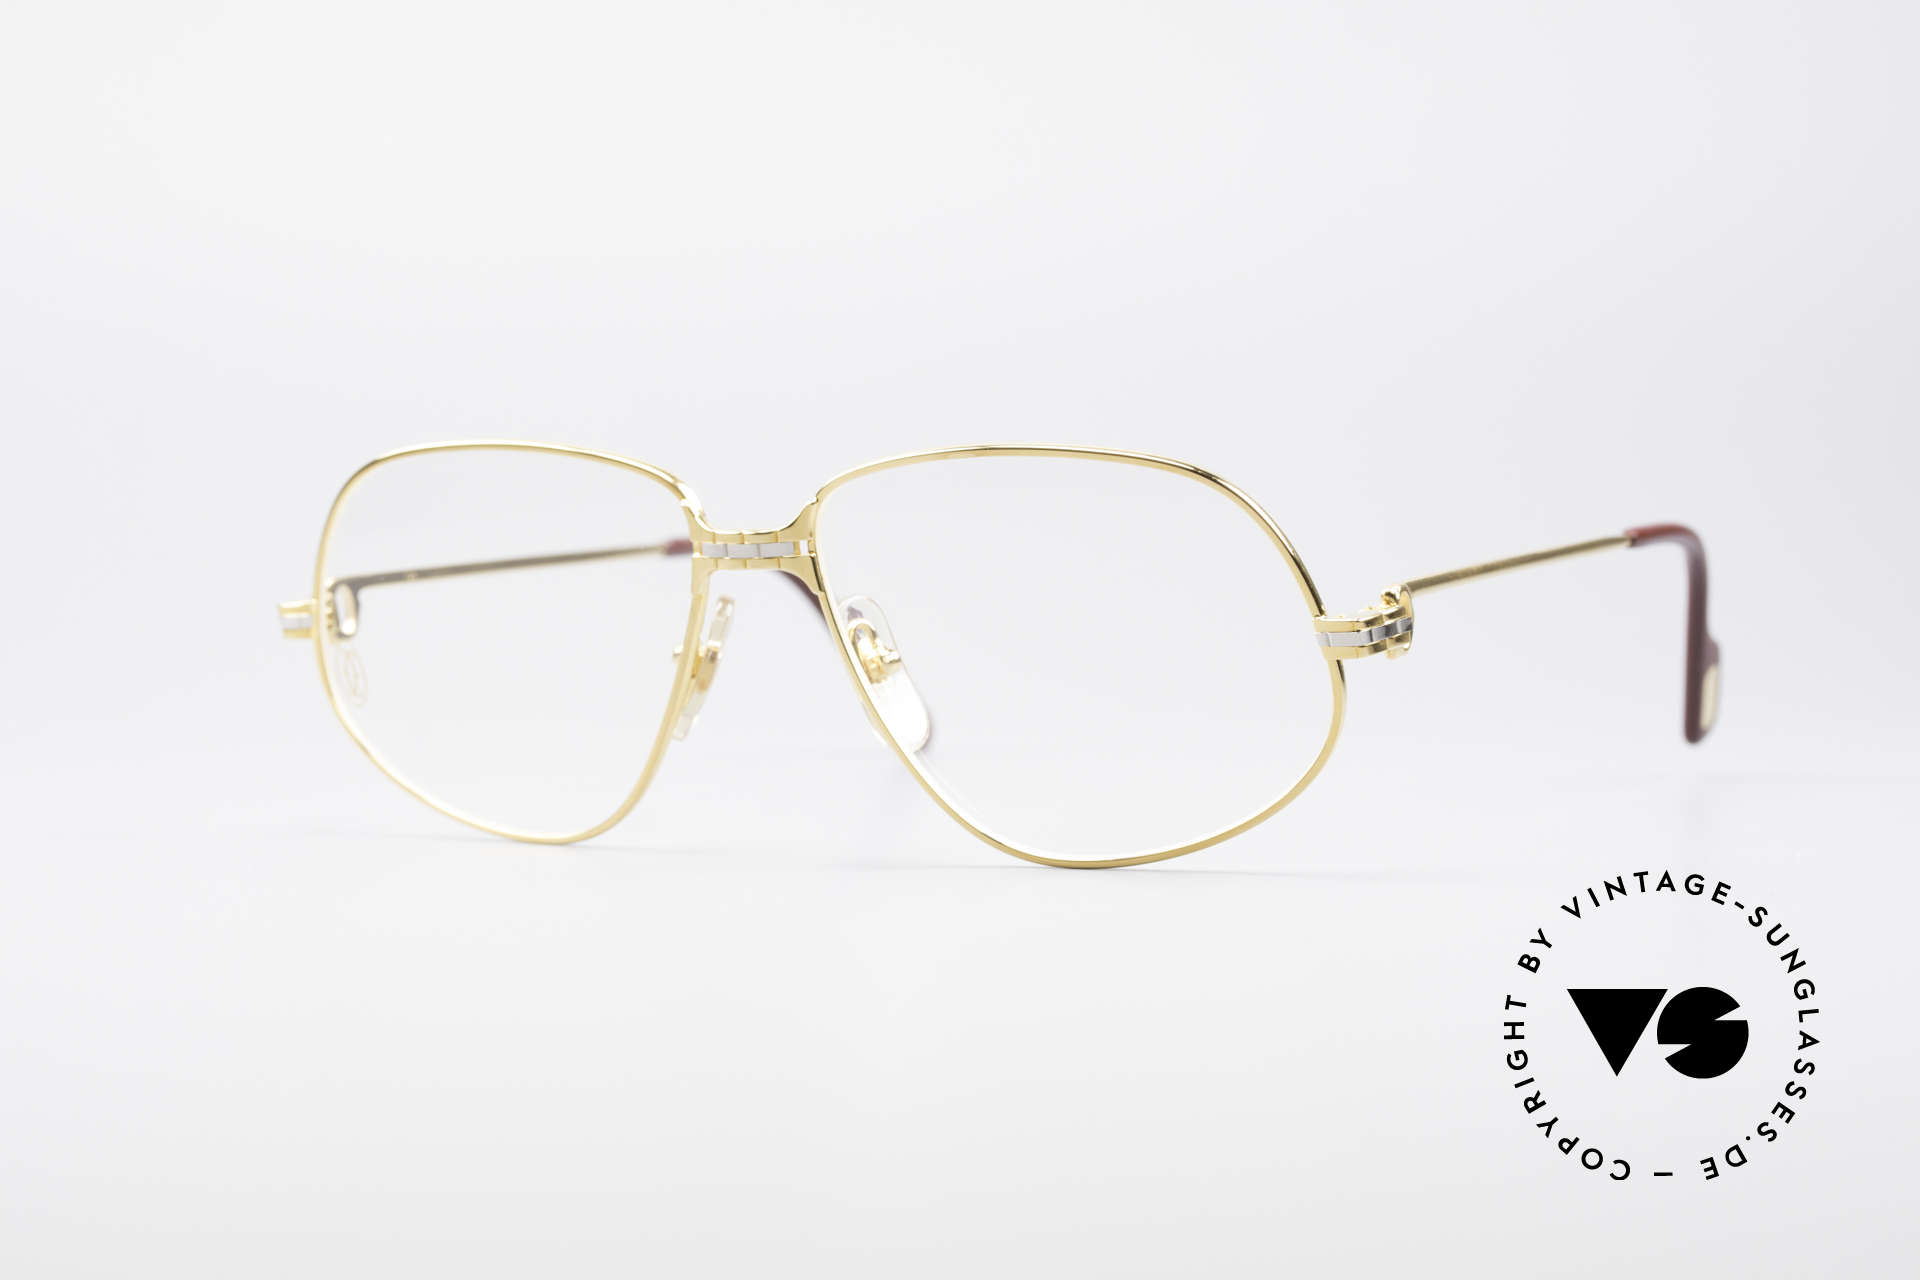 Cartier Panthere G.M. - M Luxury Eyeglasses, Cartier Panthère = the world famous panther by CARTIER, Made for Men